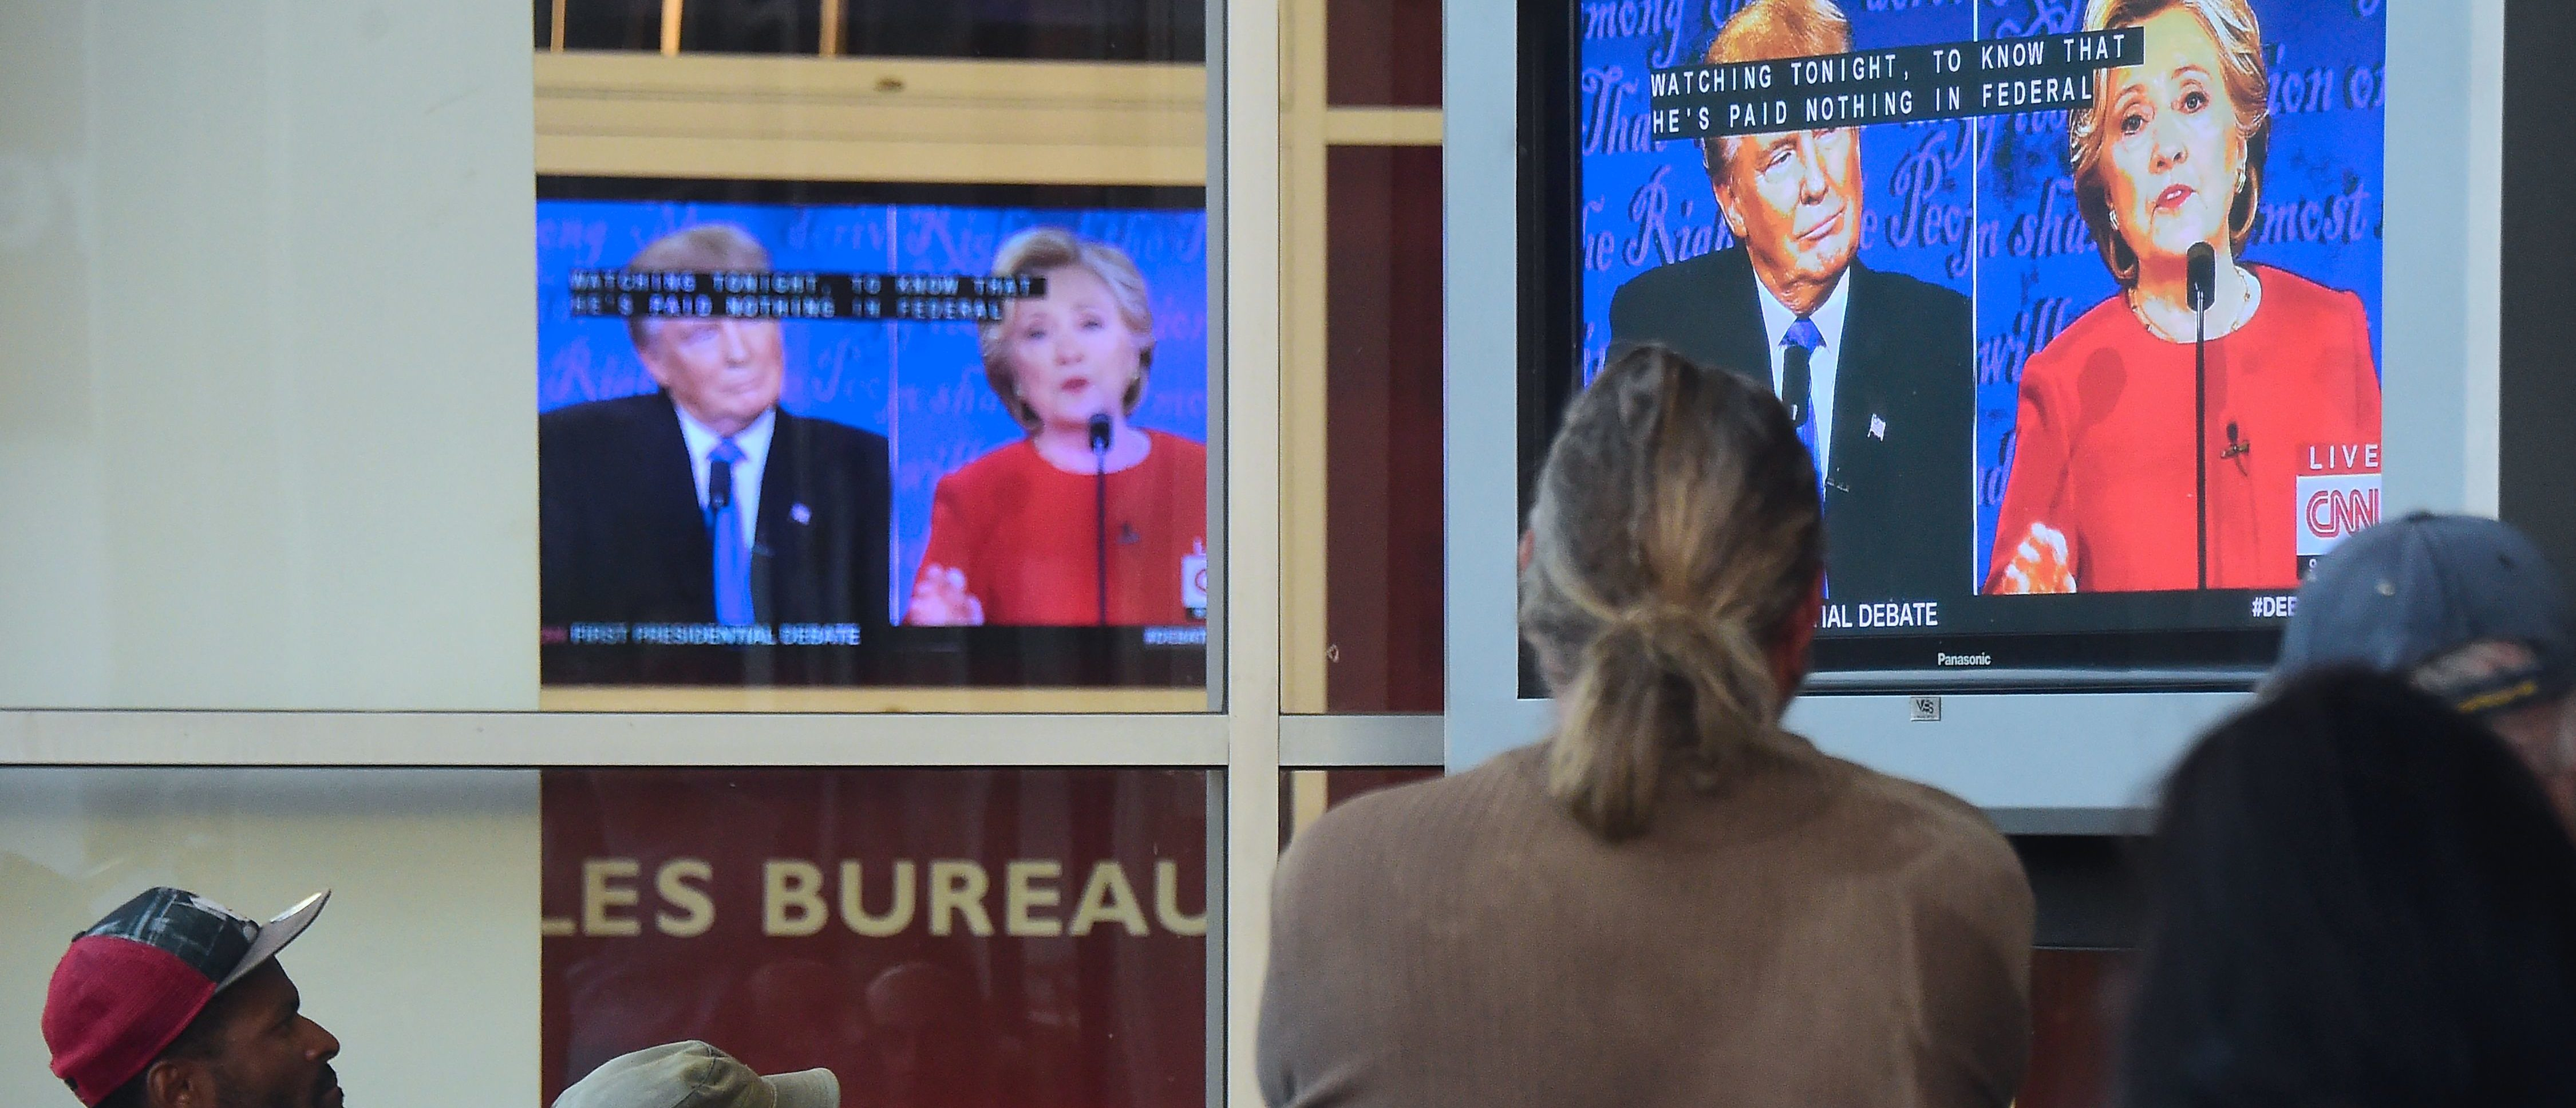 People gather to watch the first US presidential debate between Hillary Clinton and Donald Trump,nominees for the Democratic and Republican parties respectively, off a television set in front of an office building in Hollywood, California on September 26, 2016. FREDERIC J BROWN/AFP/Getty Images